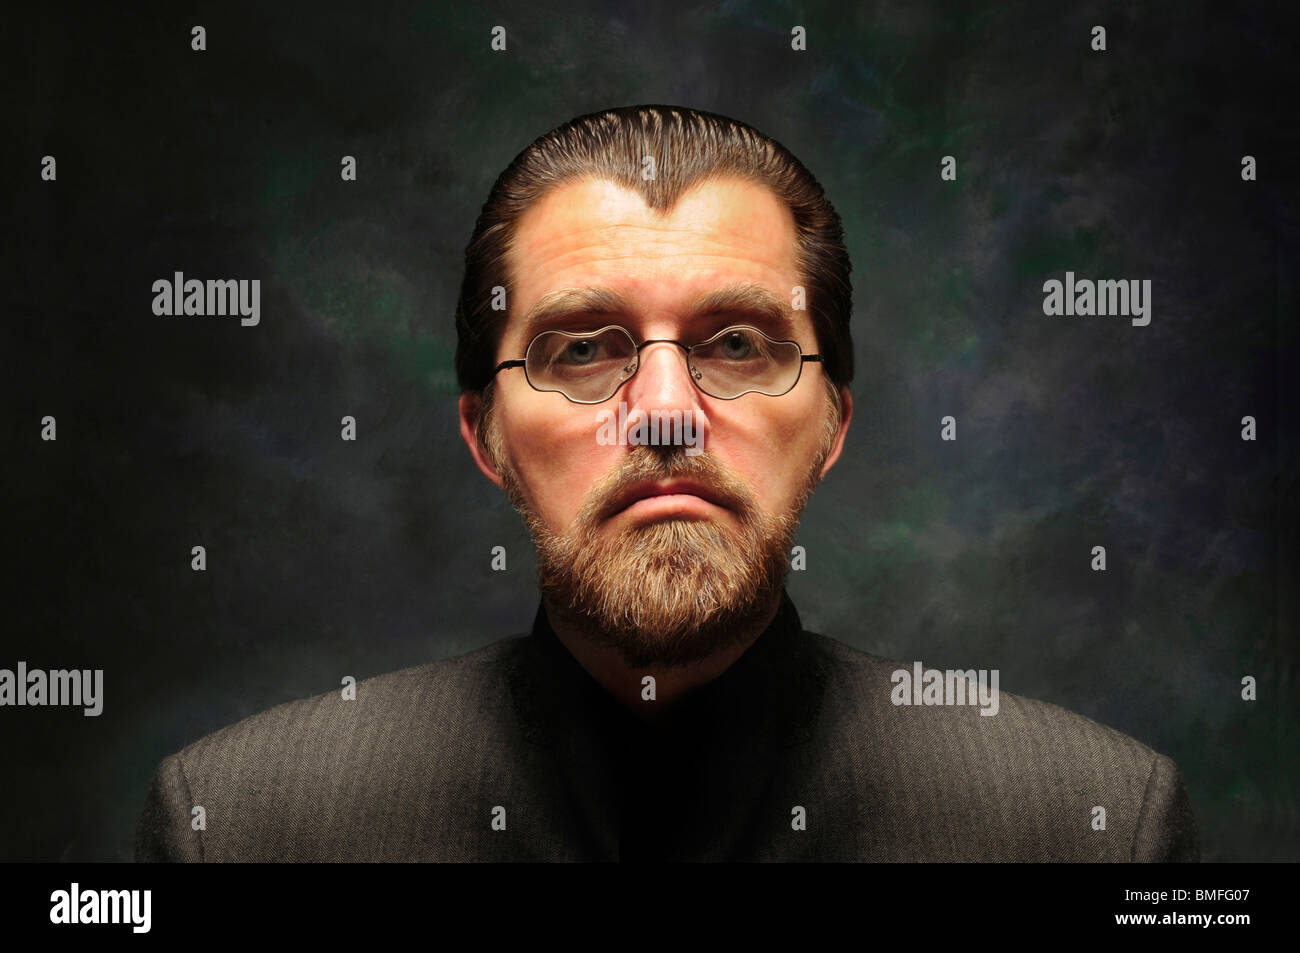 Orwellian character with distorted misshapen glasses and beard against a dark background Stock Photo